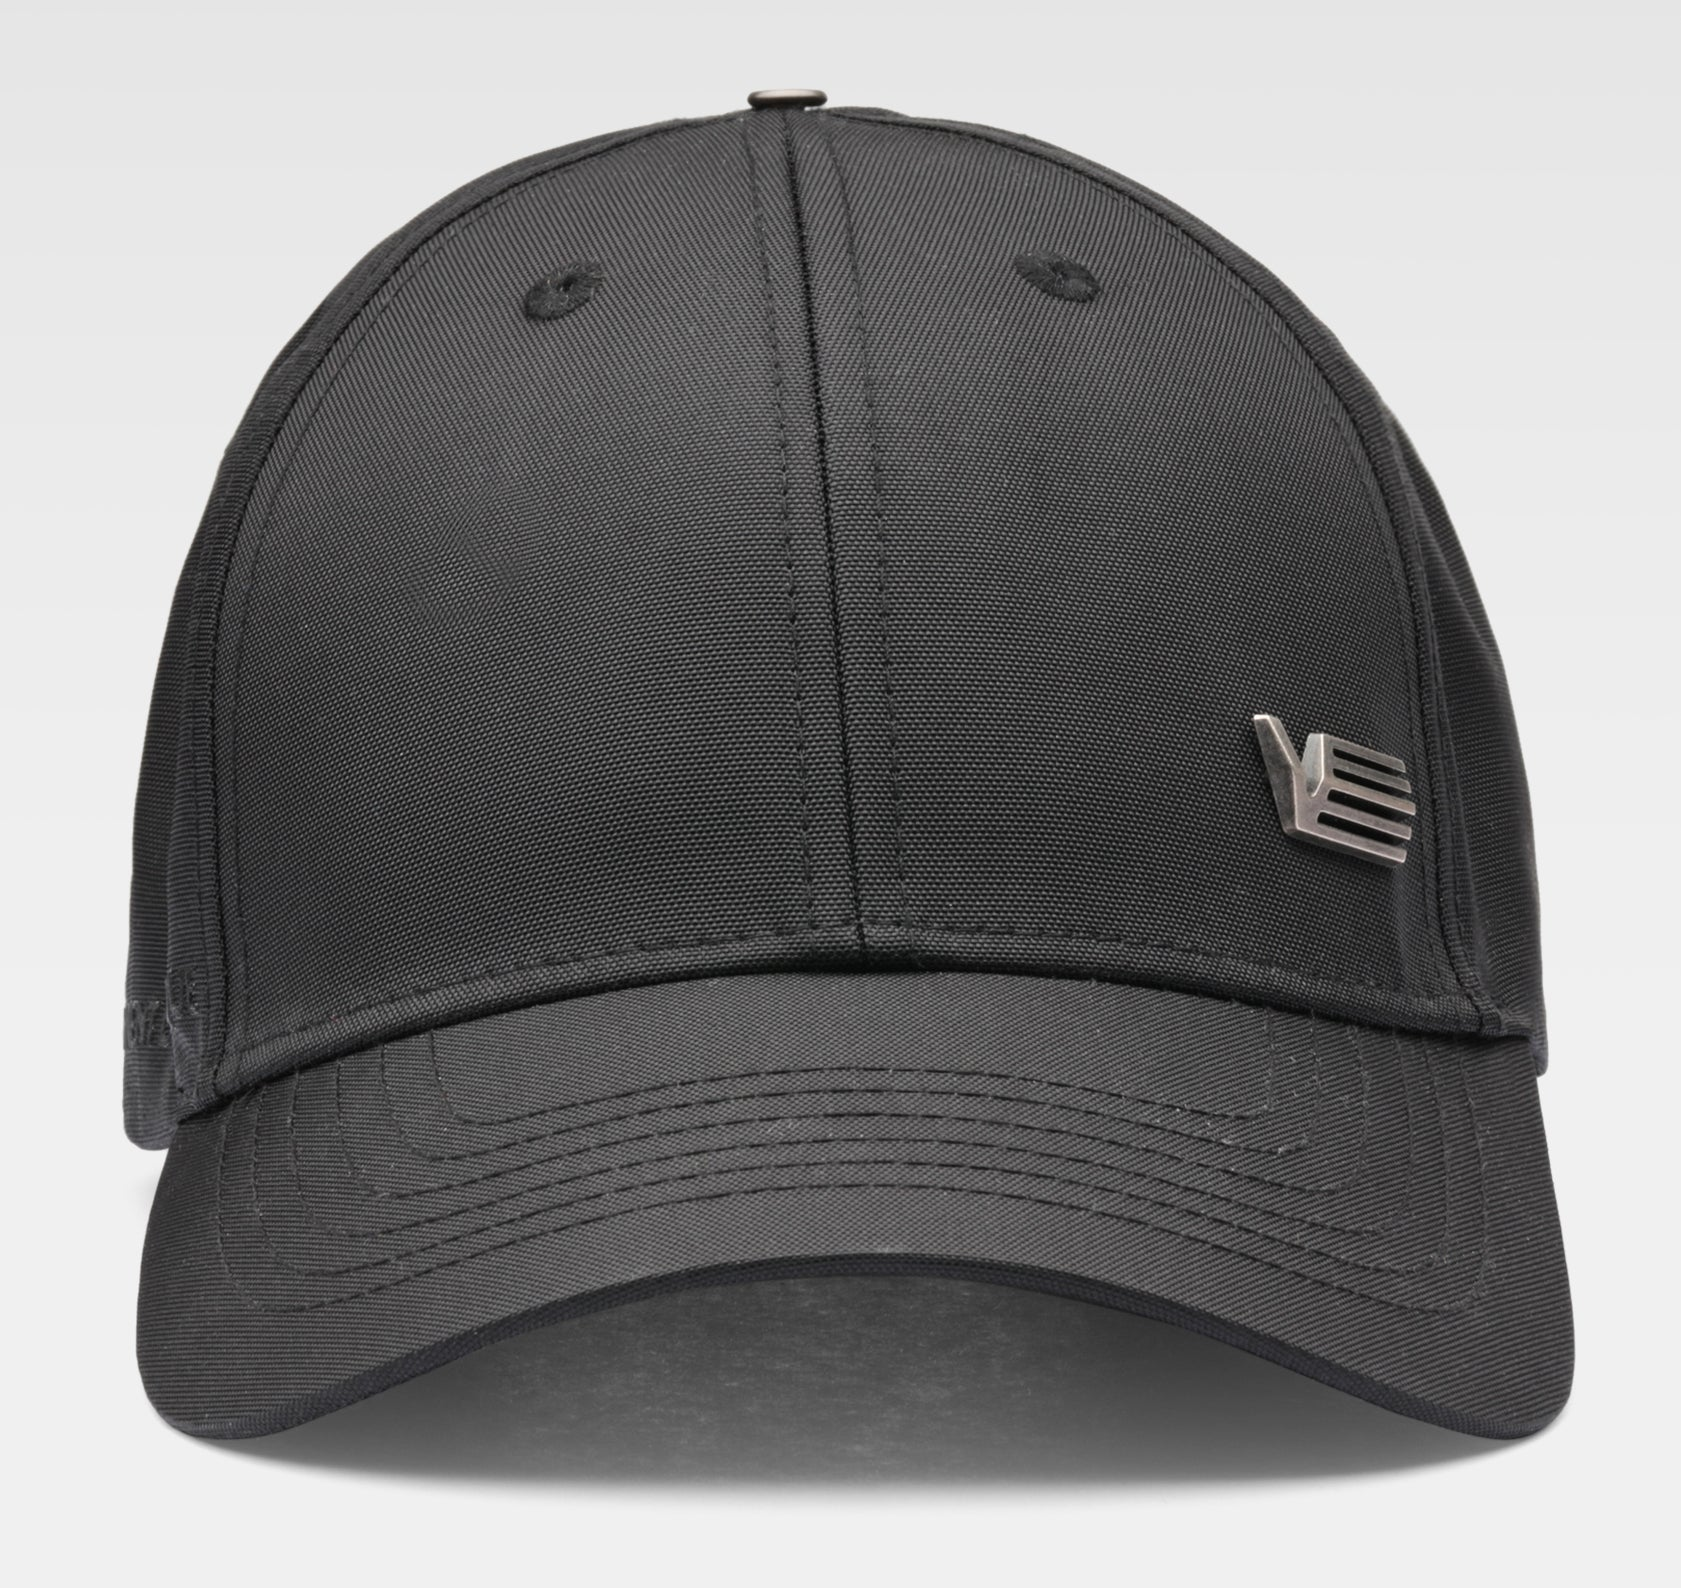 Black cap with metallic logo